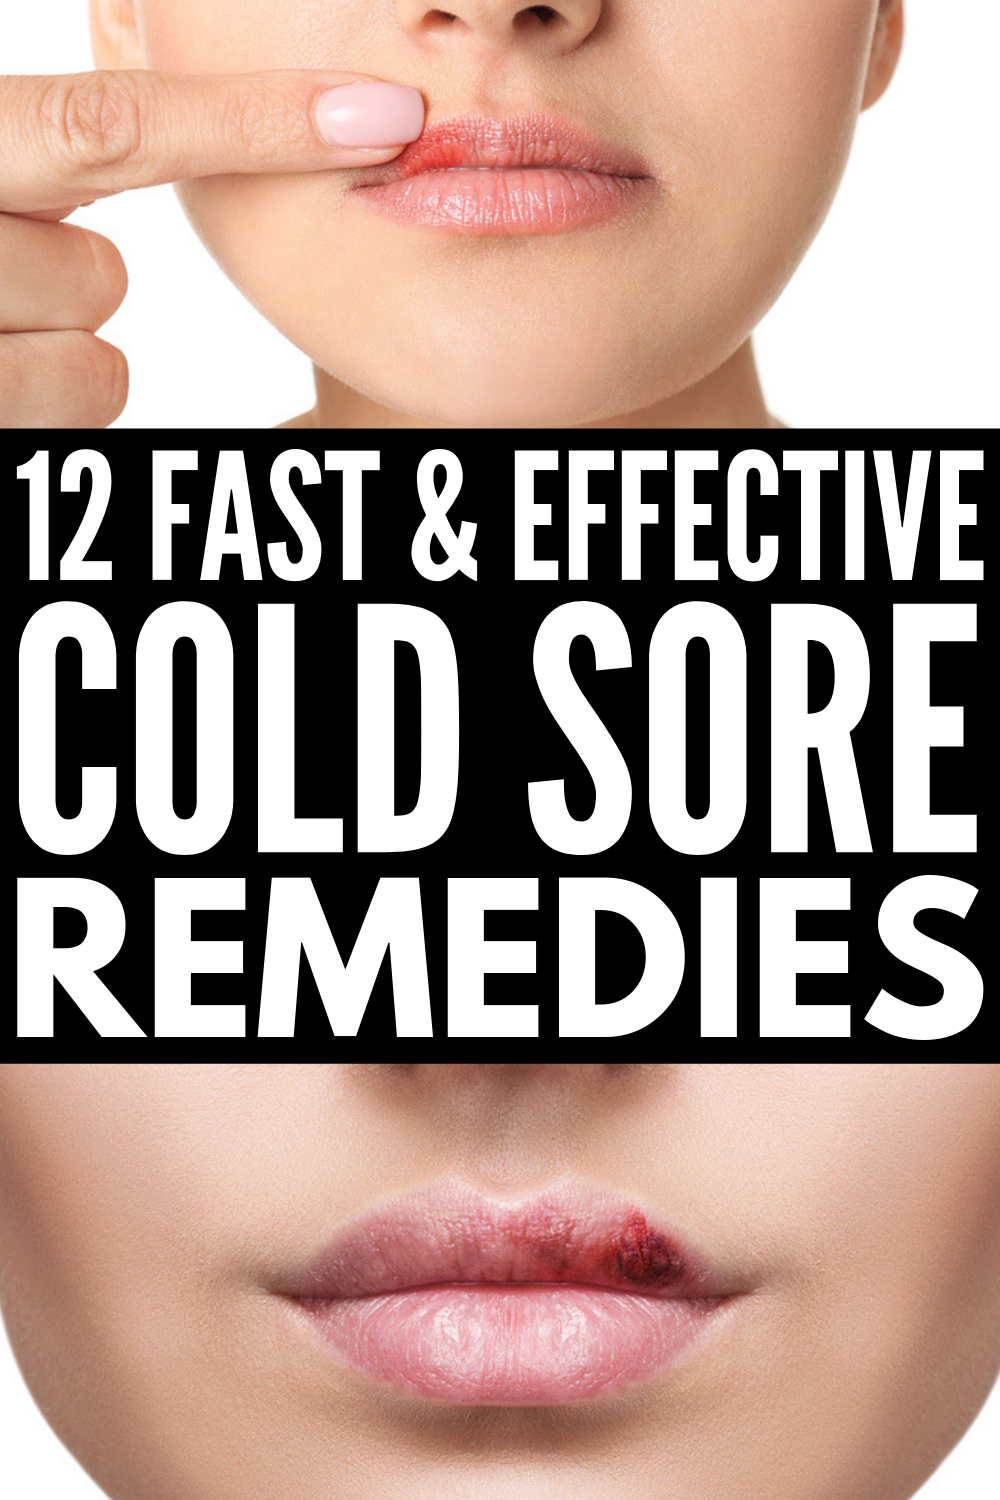 320c4e52b056bf0fe996cbf4c768c7ea - How To Get Swelling Down From A Cold Sore